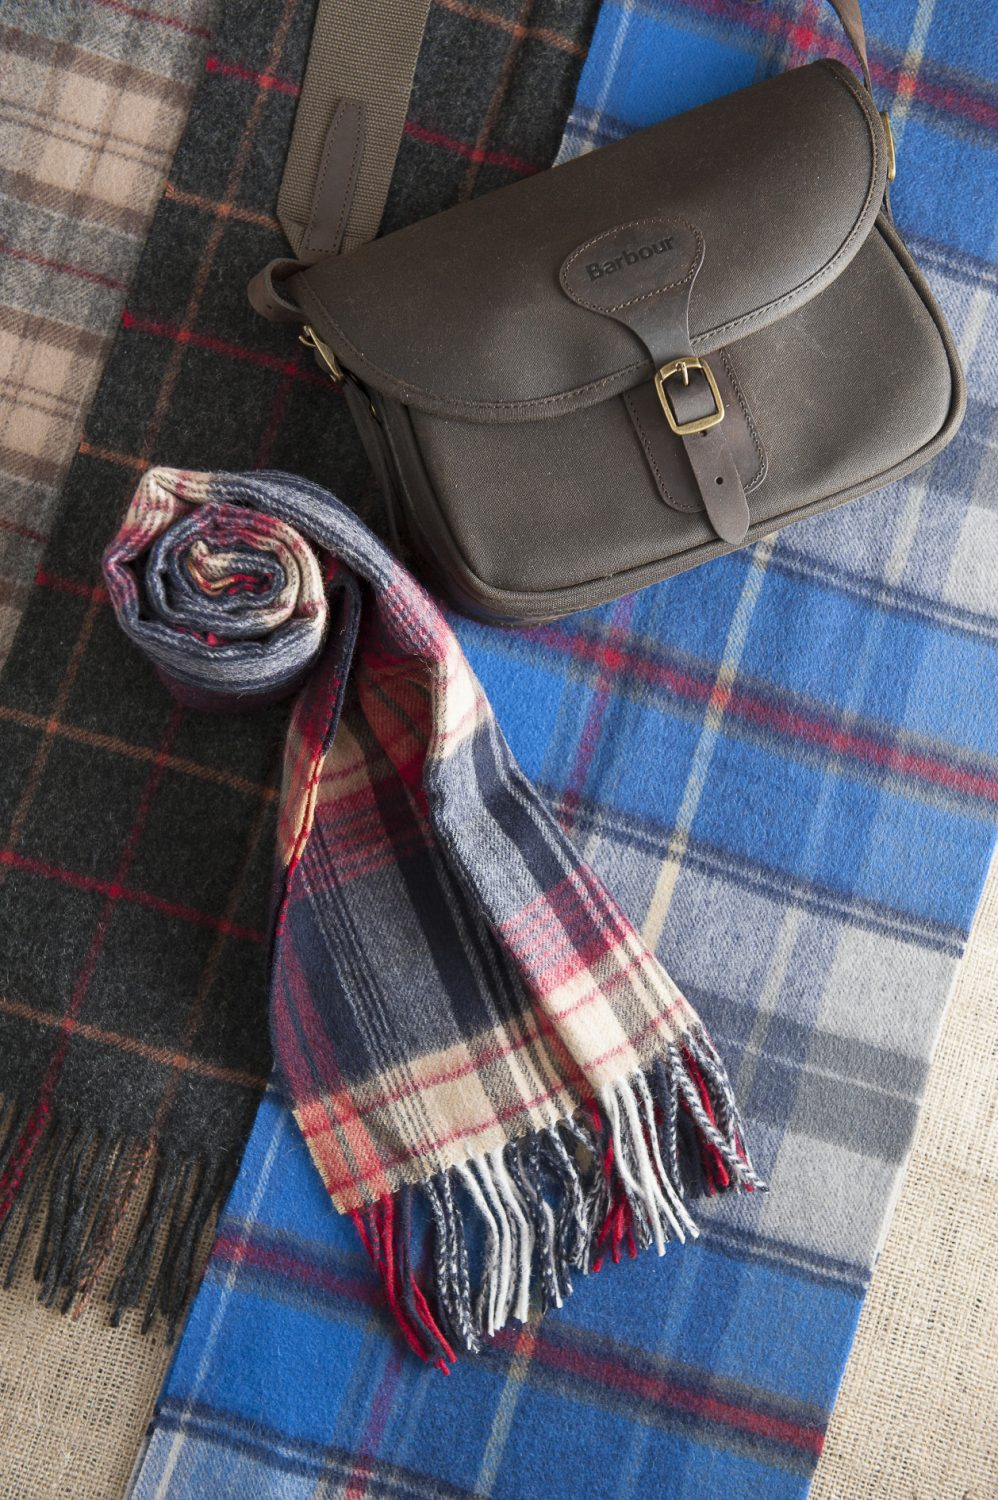 Barbour waxed cartridge bag, £79.95, Barbour lambswool tartan scarves (left, middle and rolled), from £24.95, The Golden Fleece, Rye 01797 224271 www.thegoldenfleece.co.uk; Joules scarf (right), £19.95, Charity Farm Countrystore, Cranbrook 01580 713189 www.charityfarmcountrystore.co.uk